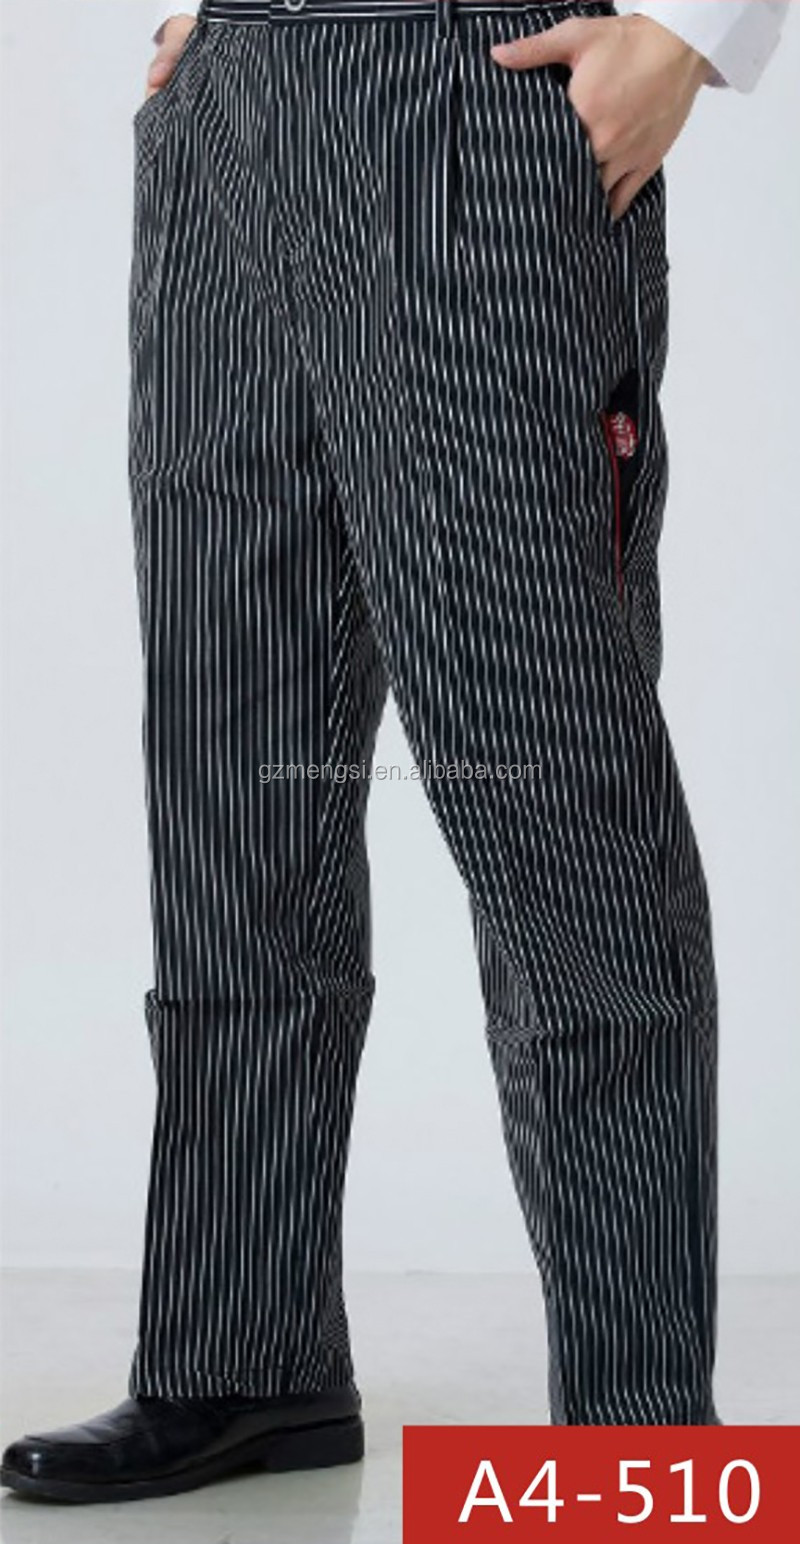 Wholesale customized casual 100% cotton fabric material cheap male pants